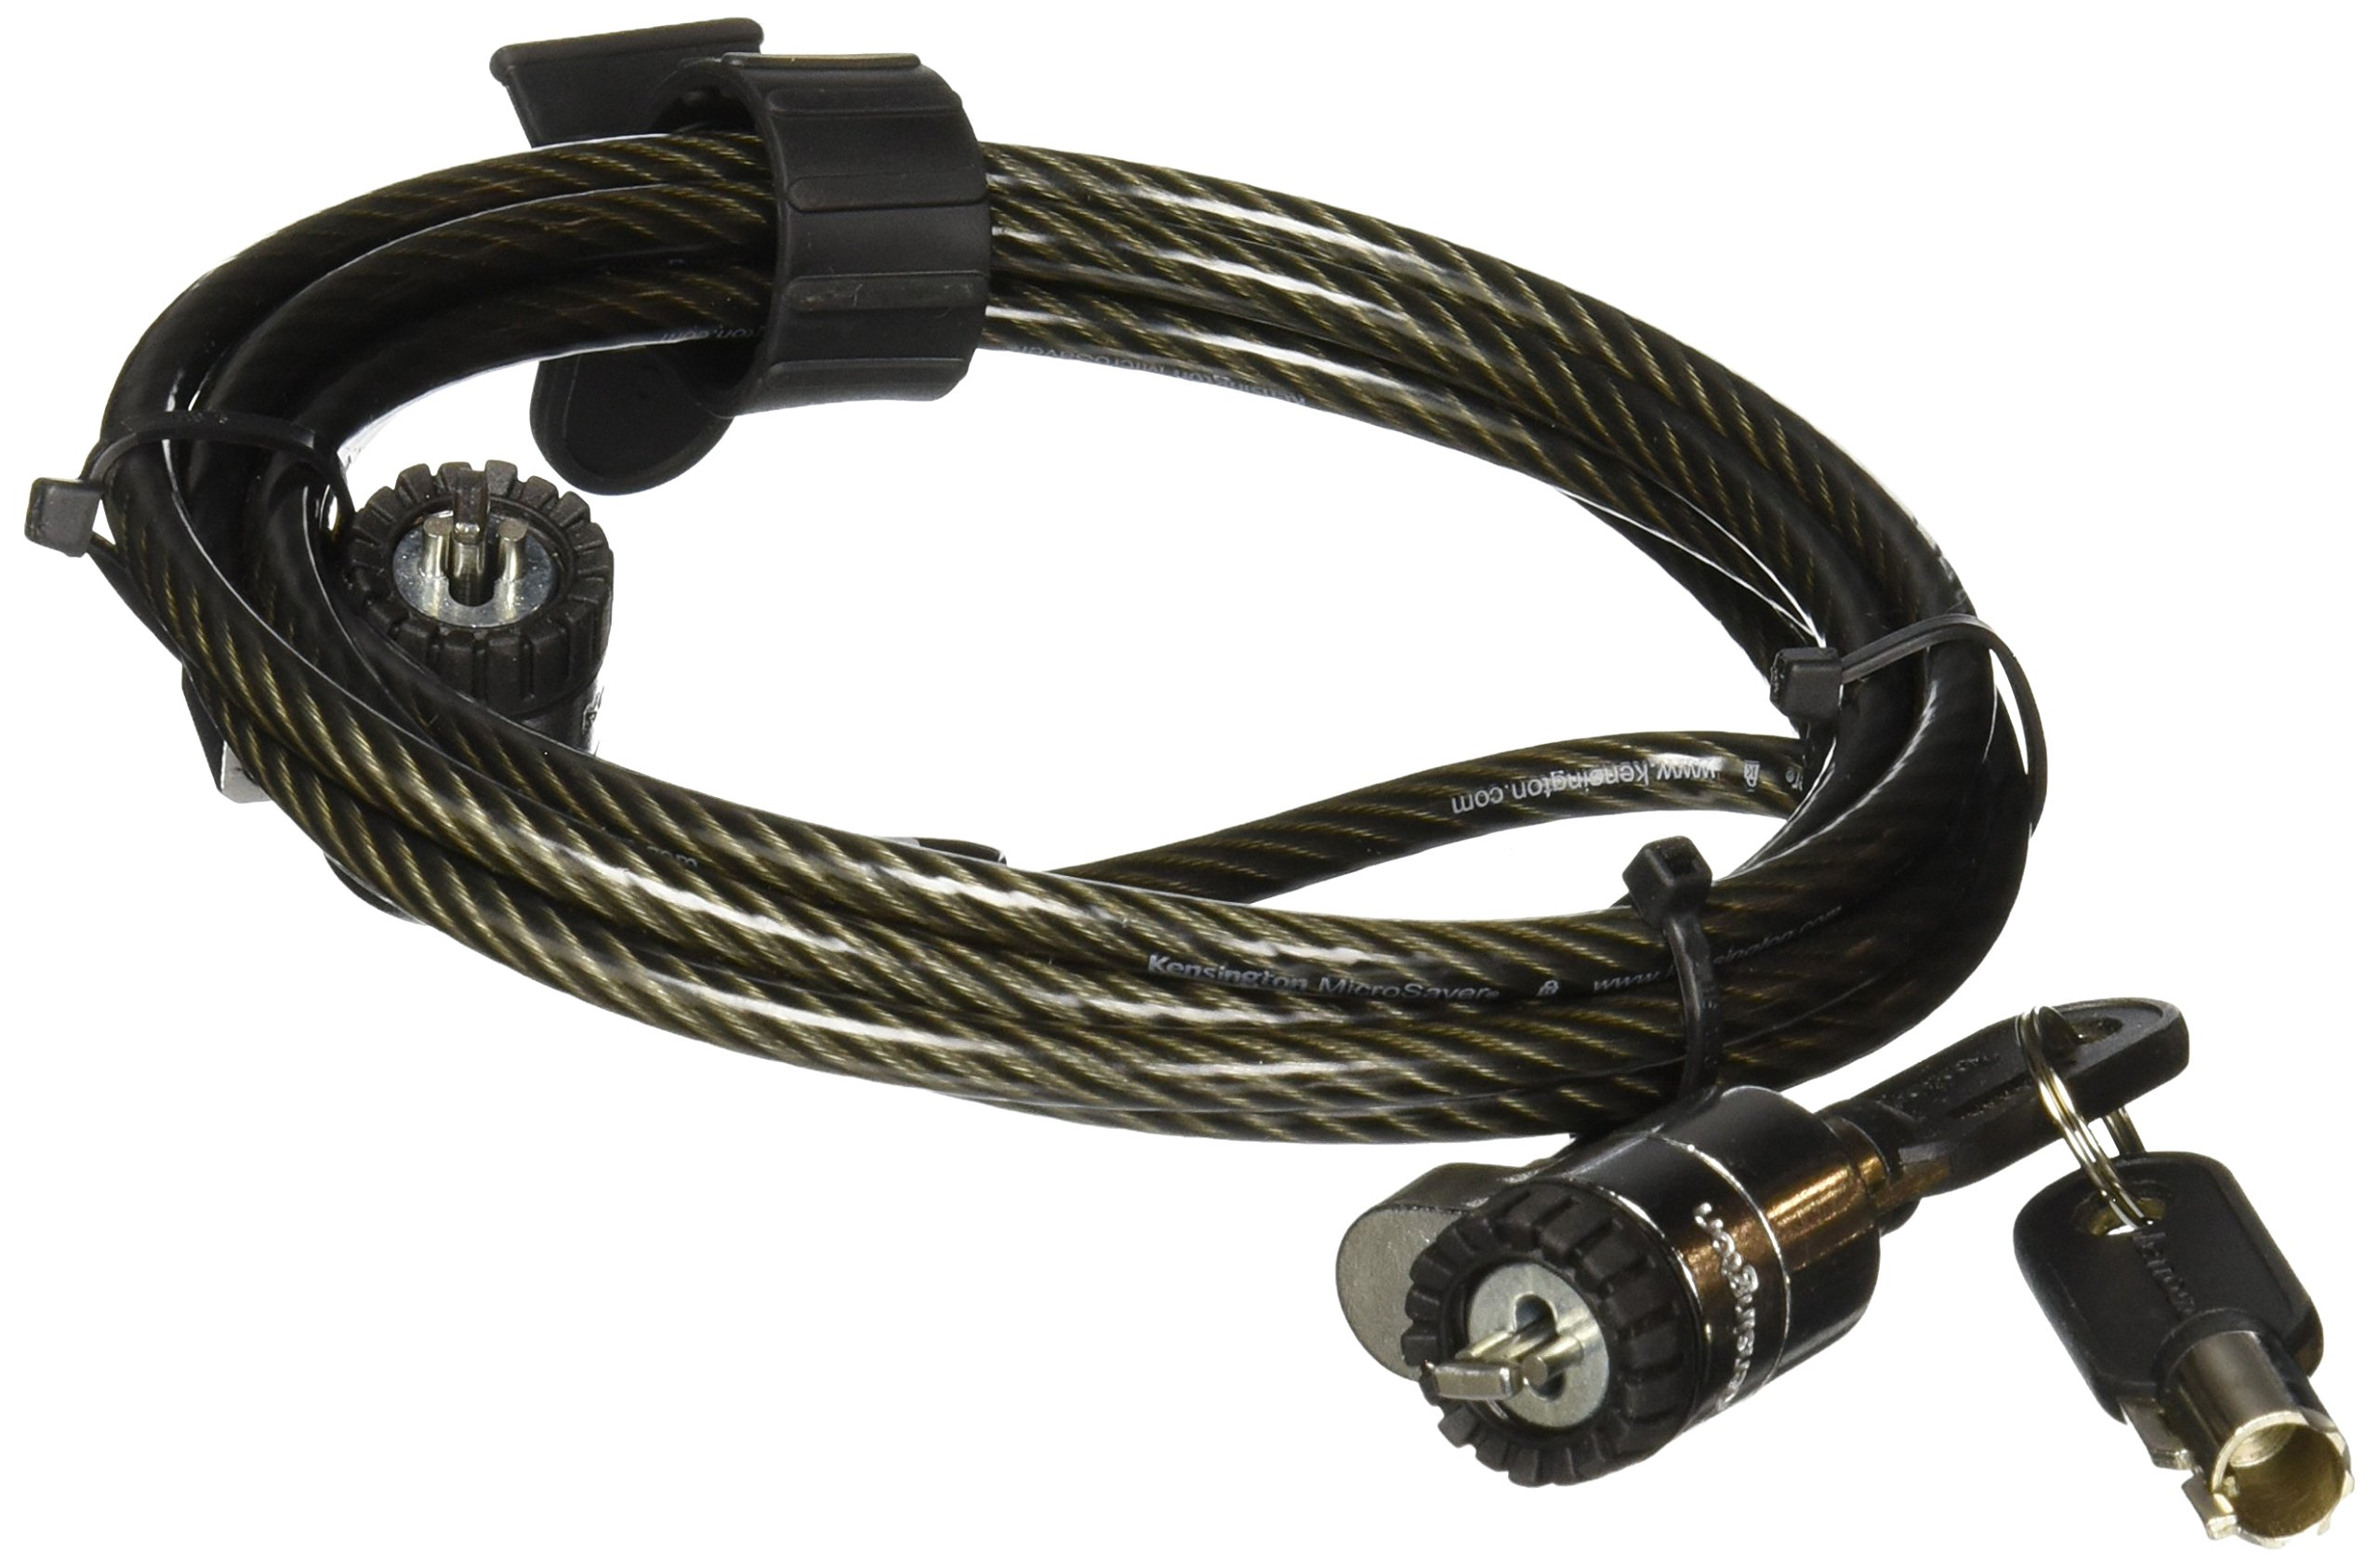 Kensington Twin Head Cable Lock by Lenovo